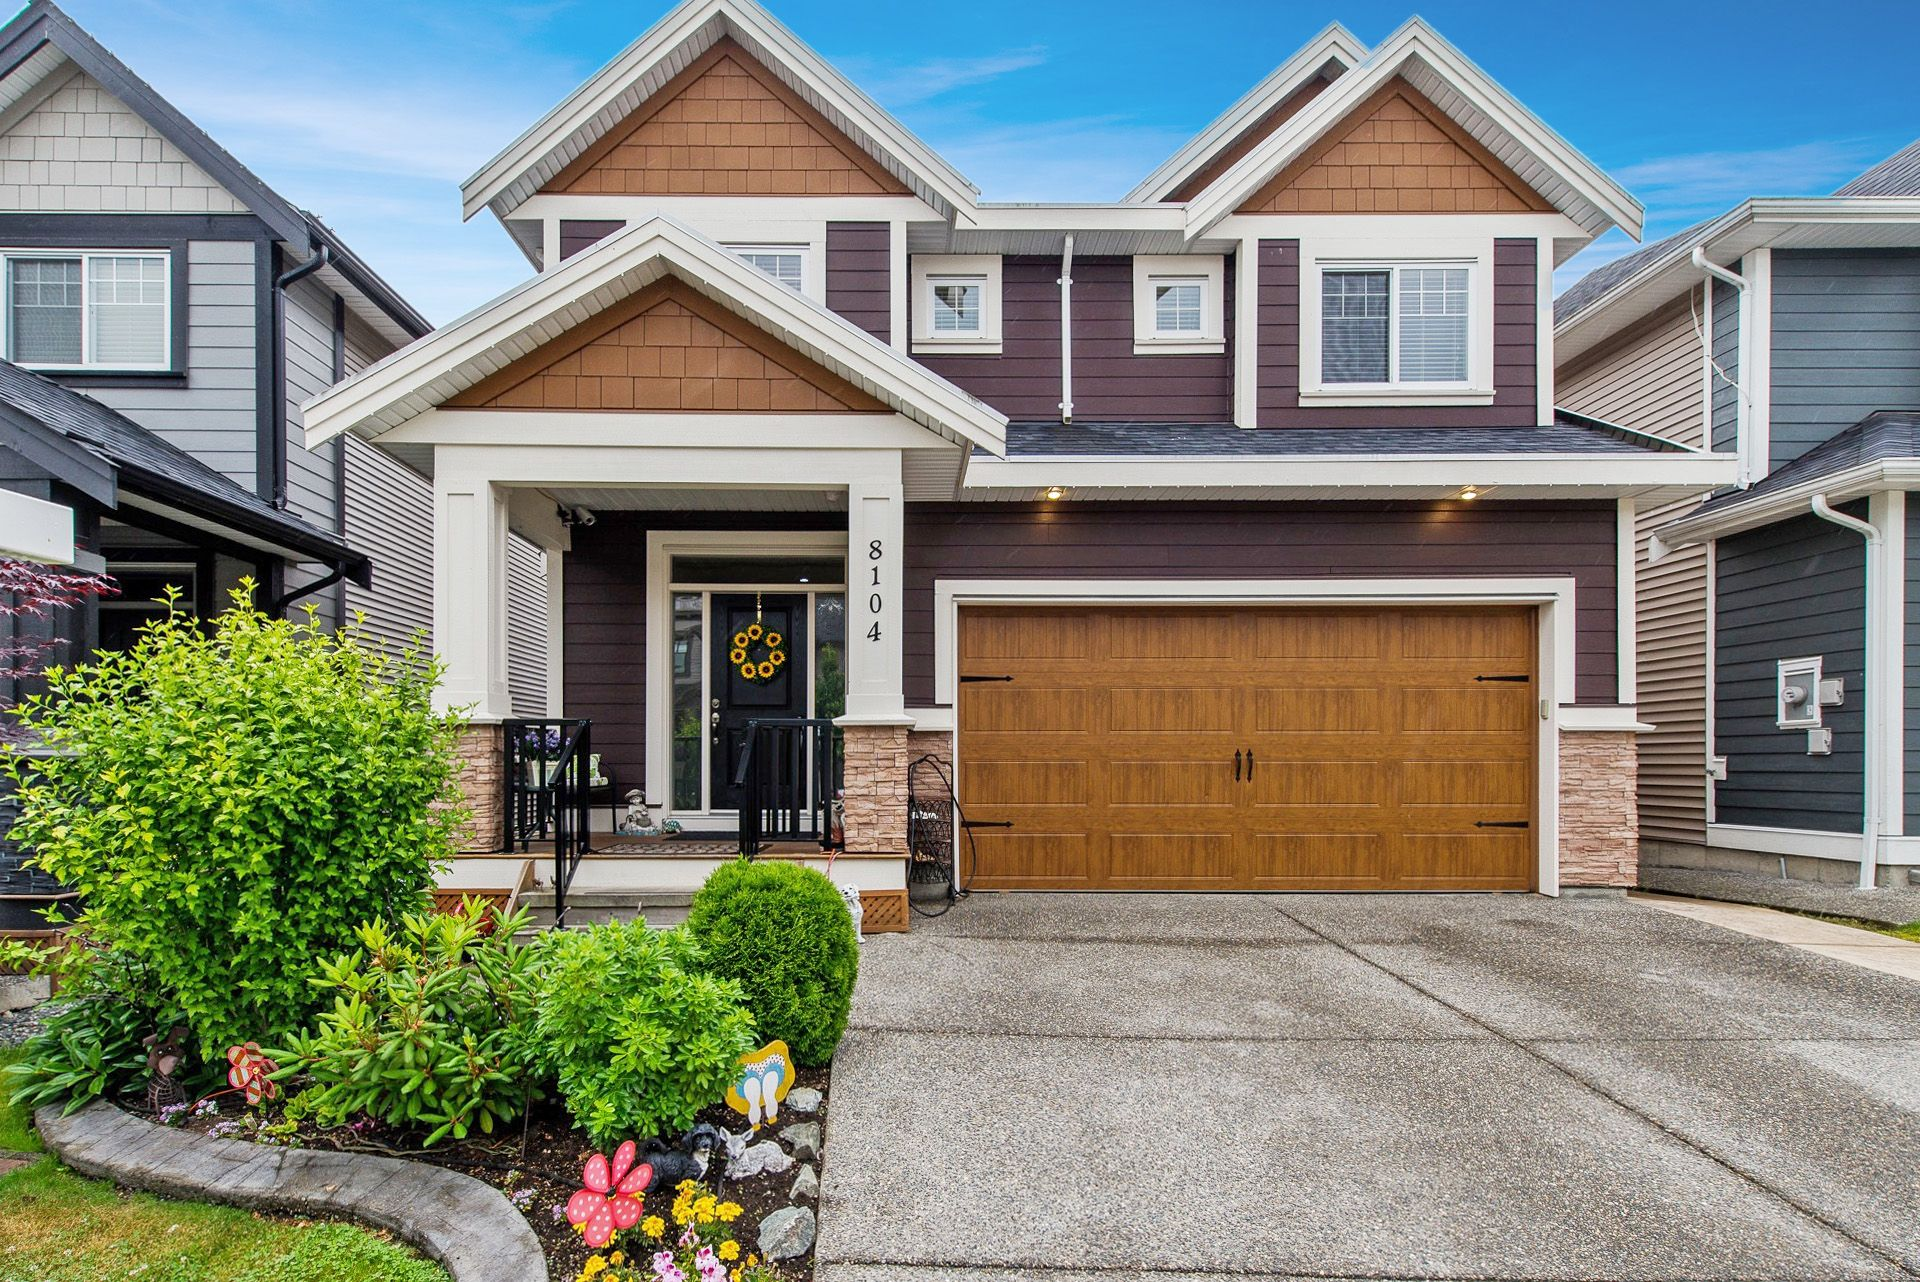 """Main Photo: 8104 211B Street in Langley: Willoughby Heights House for sale in """"Willoughby Heights"""" : MLS®# R2285564"""